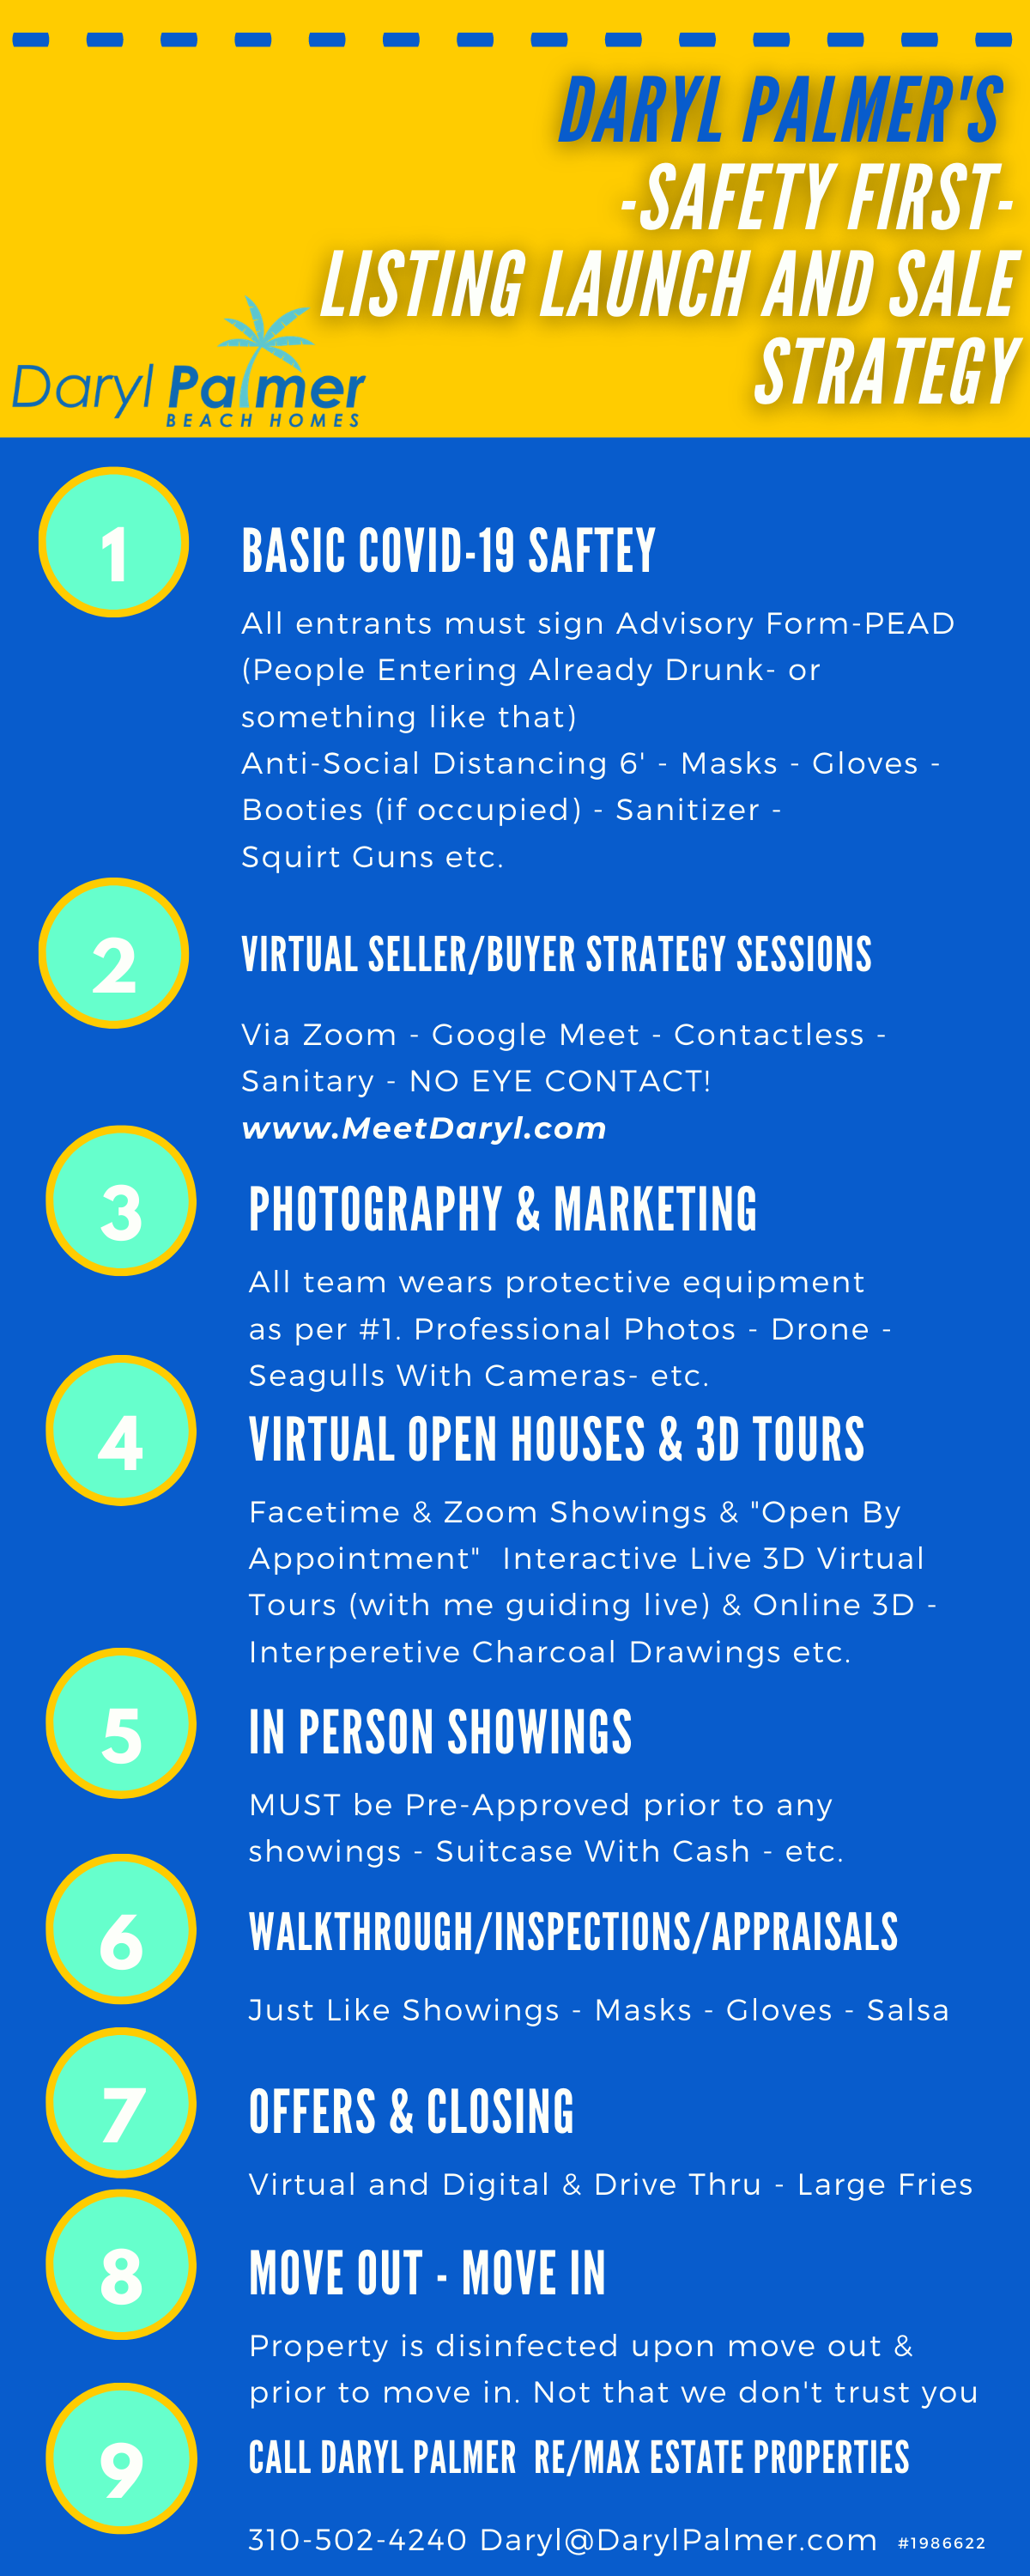 How Real Estate Agents Are Keeping You Safe Daryl Palmer Beach Homes Covid-19 Safety Protocols Infographic